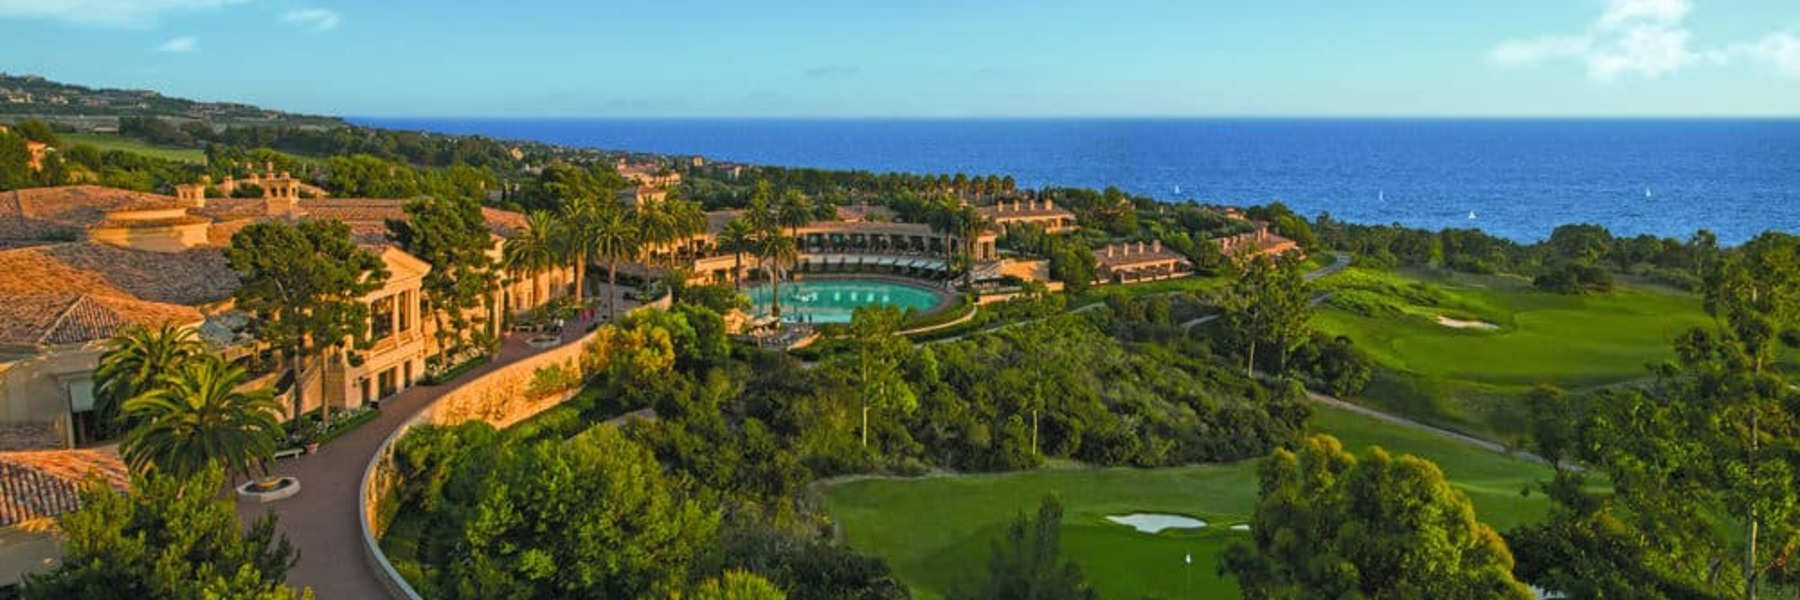 Golf Vacation Package - Oceanview Bungalow/Villa - Oceanside golf and breakfast with Resort Credit  for $489!